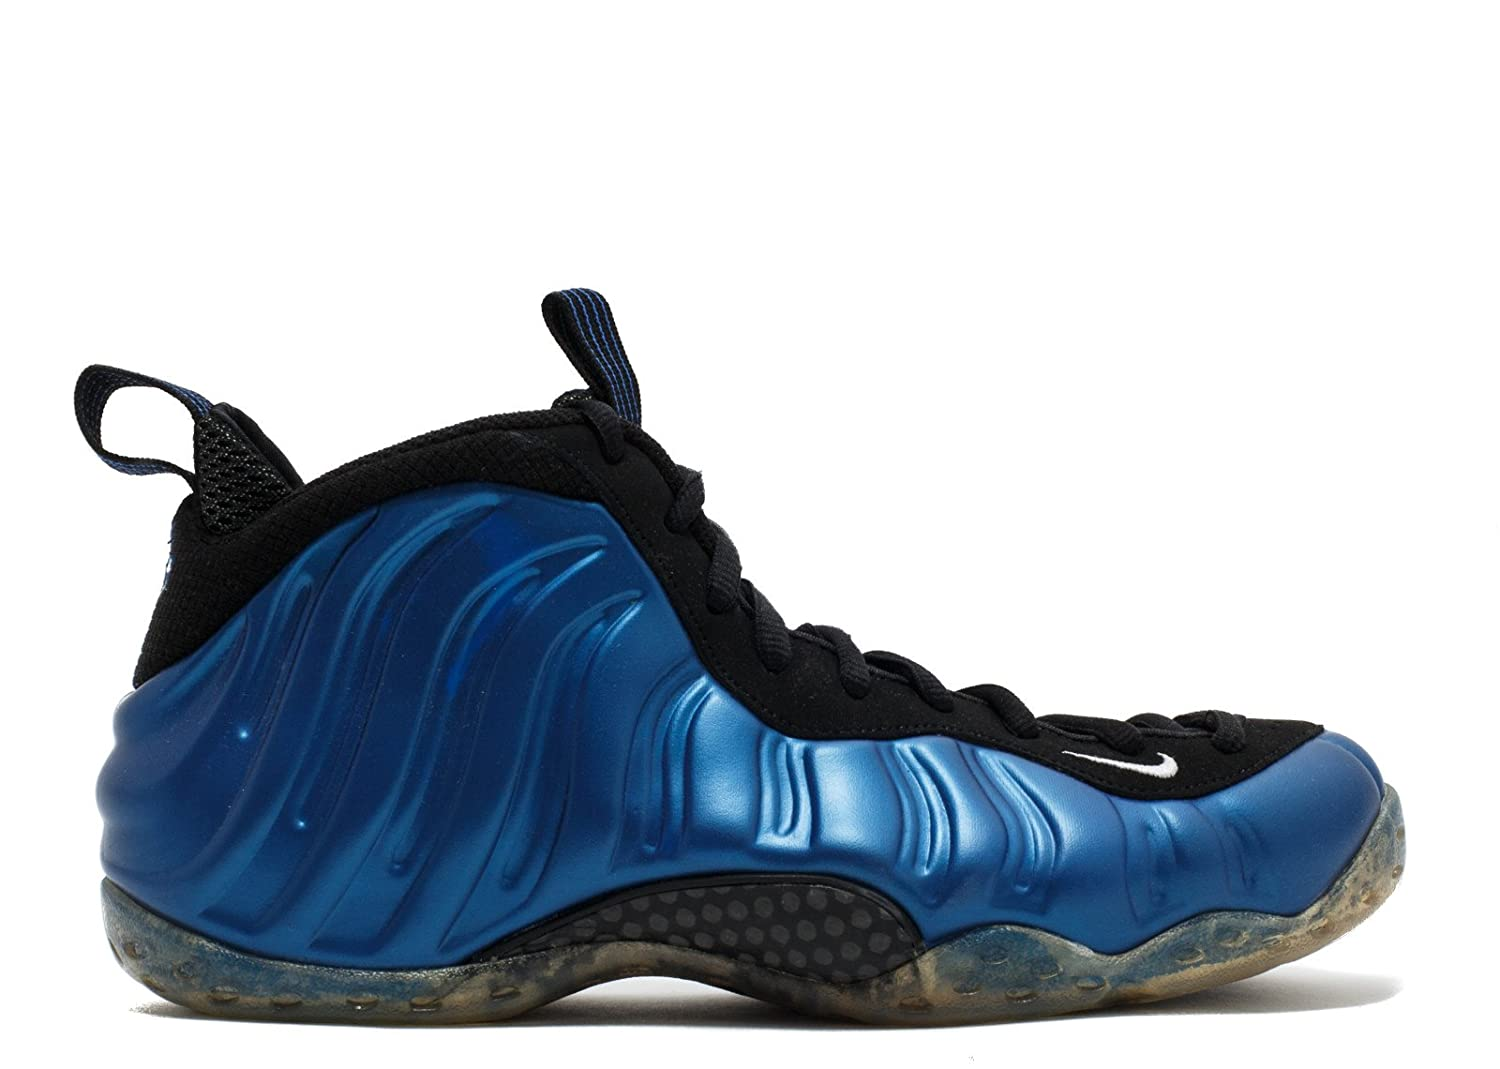 new concept 5a33b 5f66c Amazon.com   Air Foamposite One  2011 Release  - 314996-500 - Size 8.5    Basketball